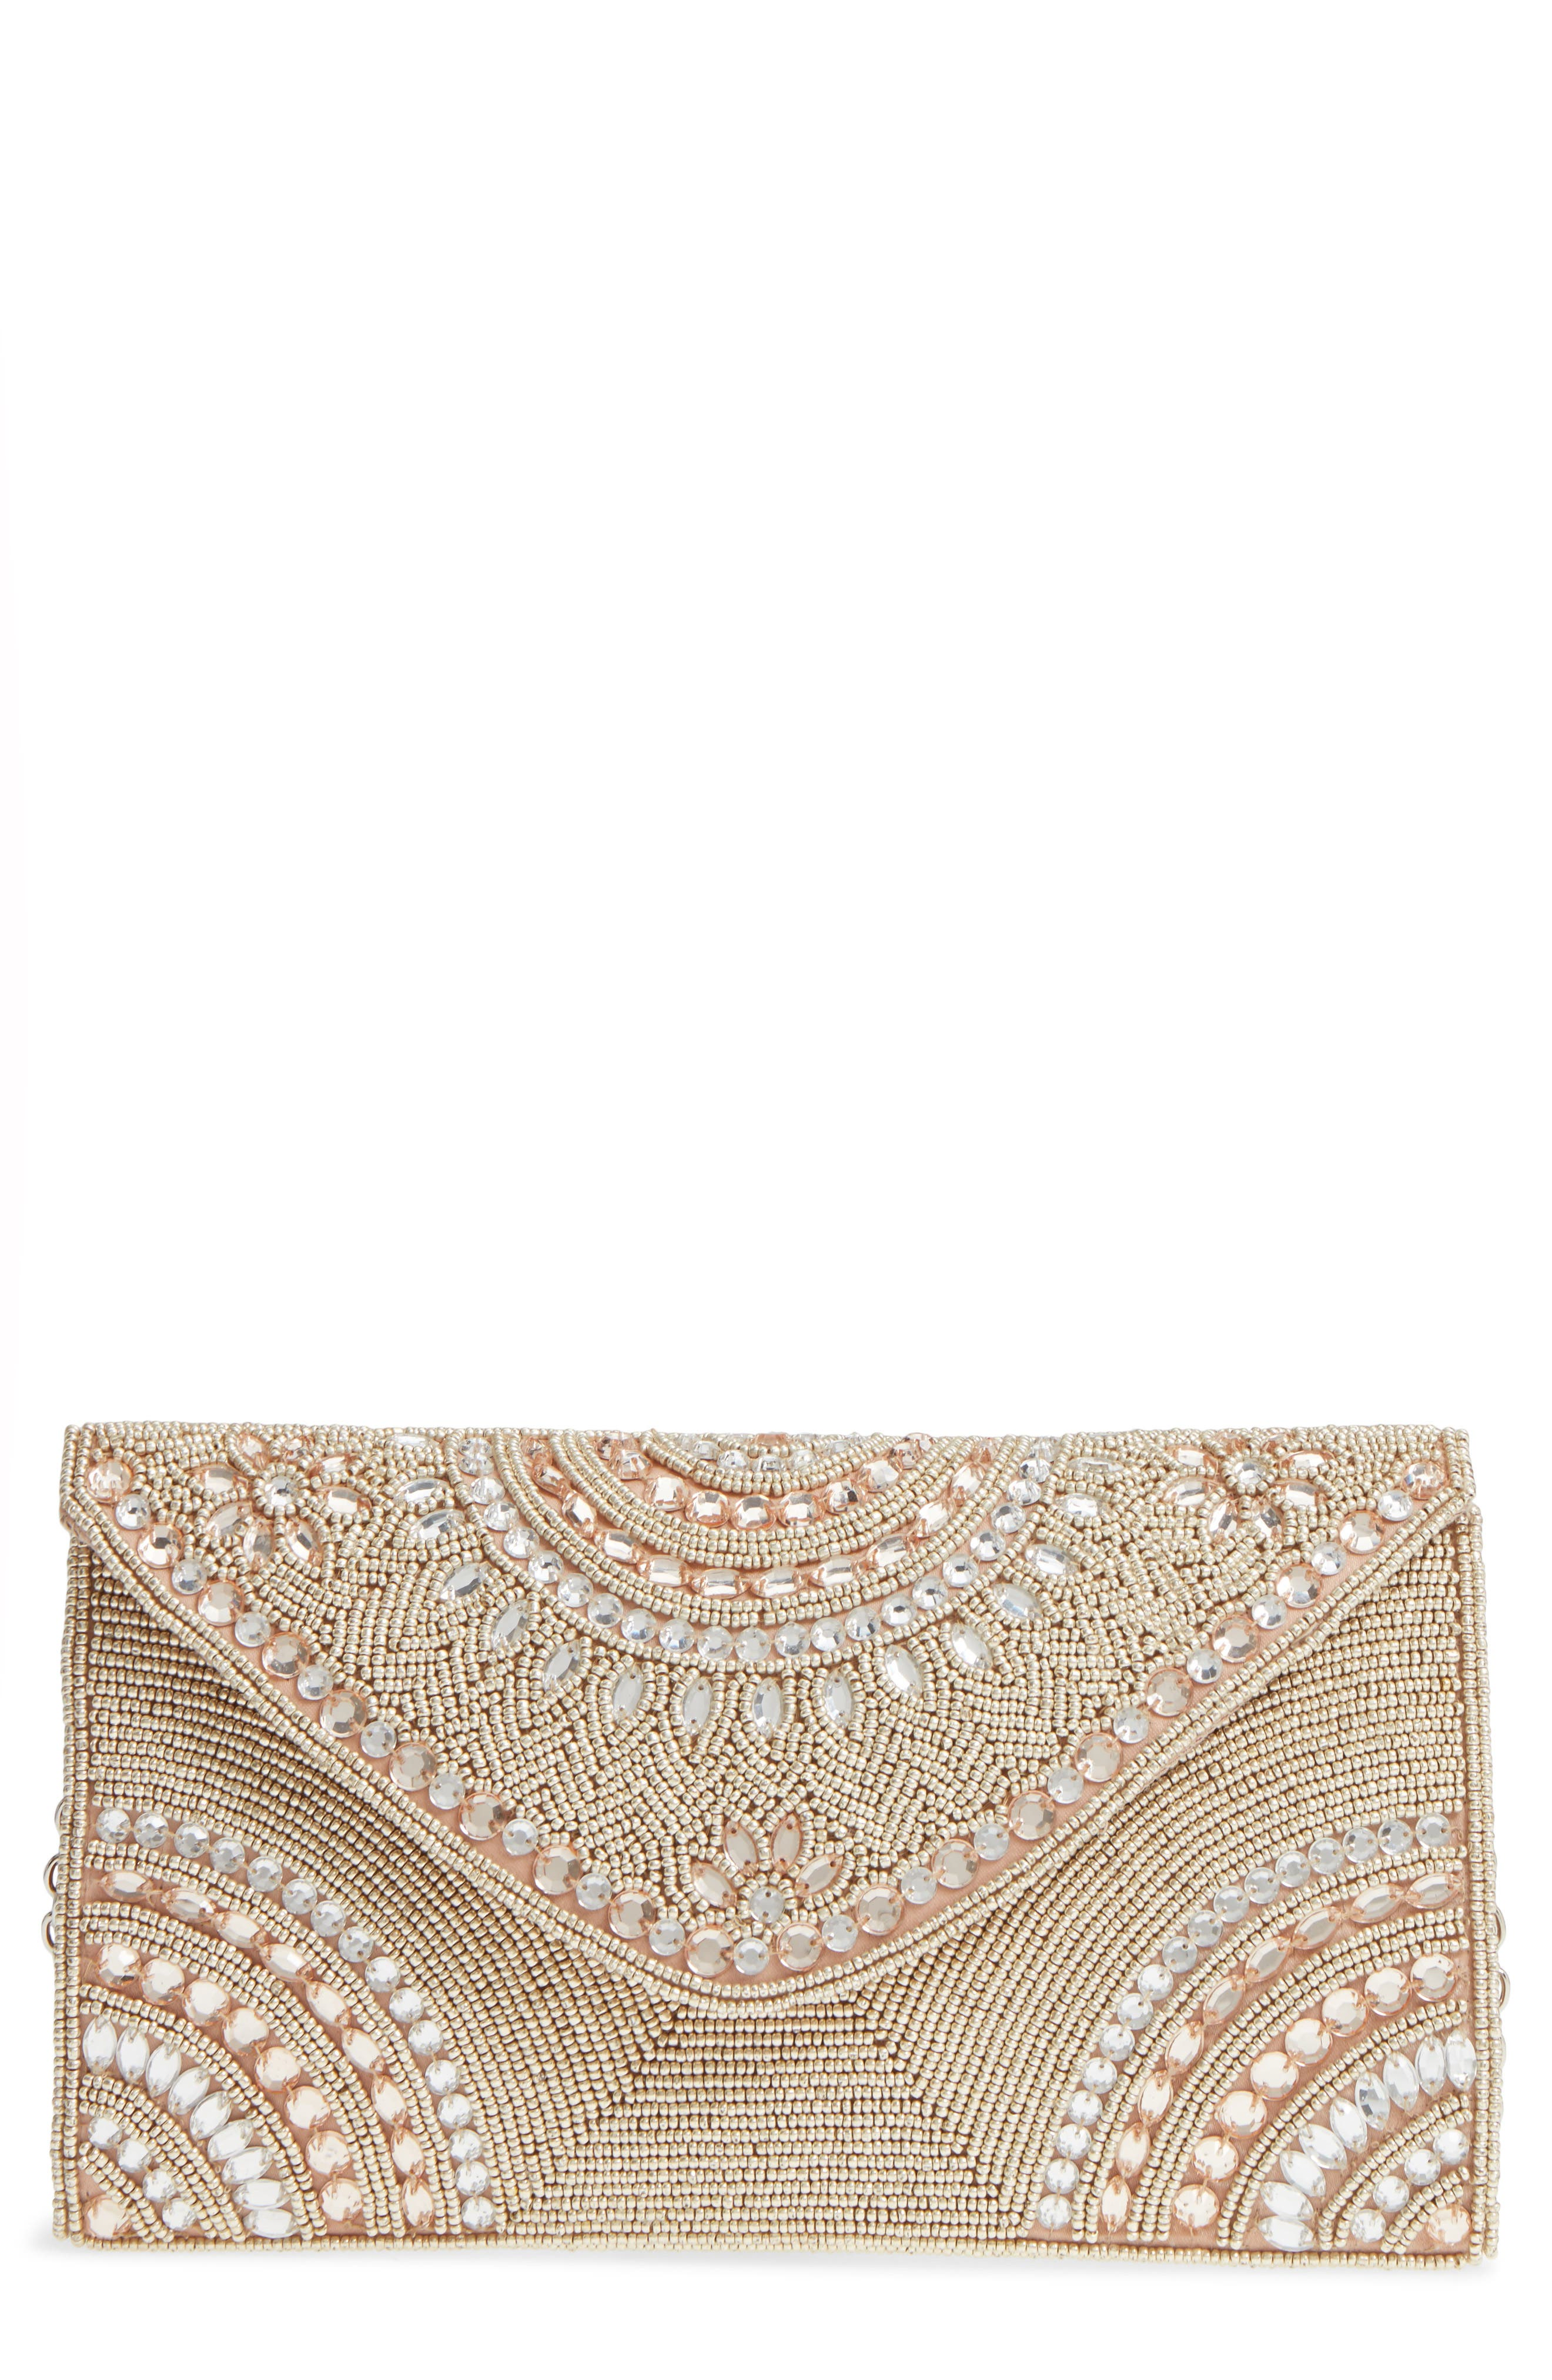 Alhambra Beaded Envelope Clutch,                         Main,                         color, Blush